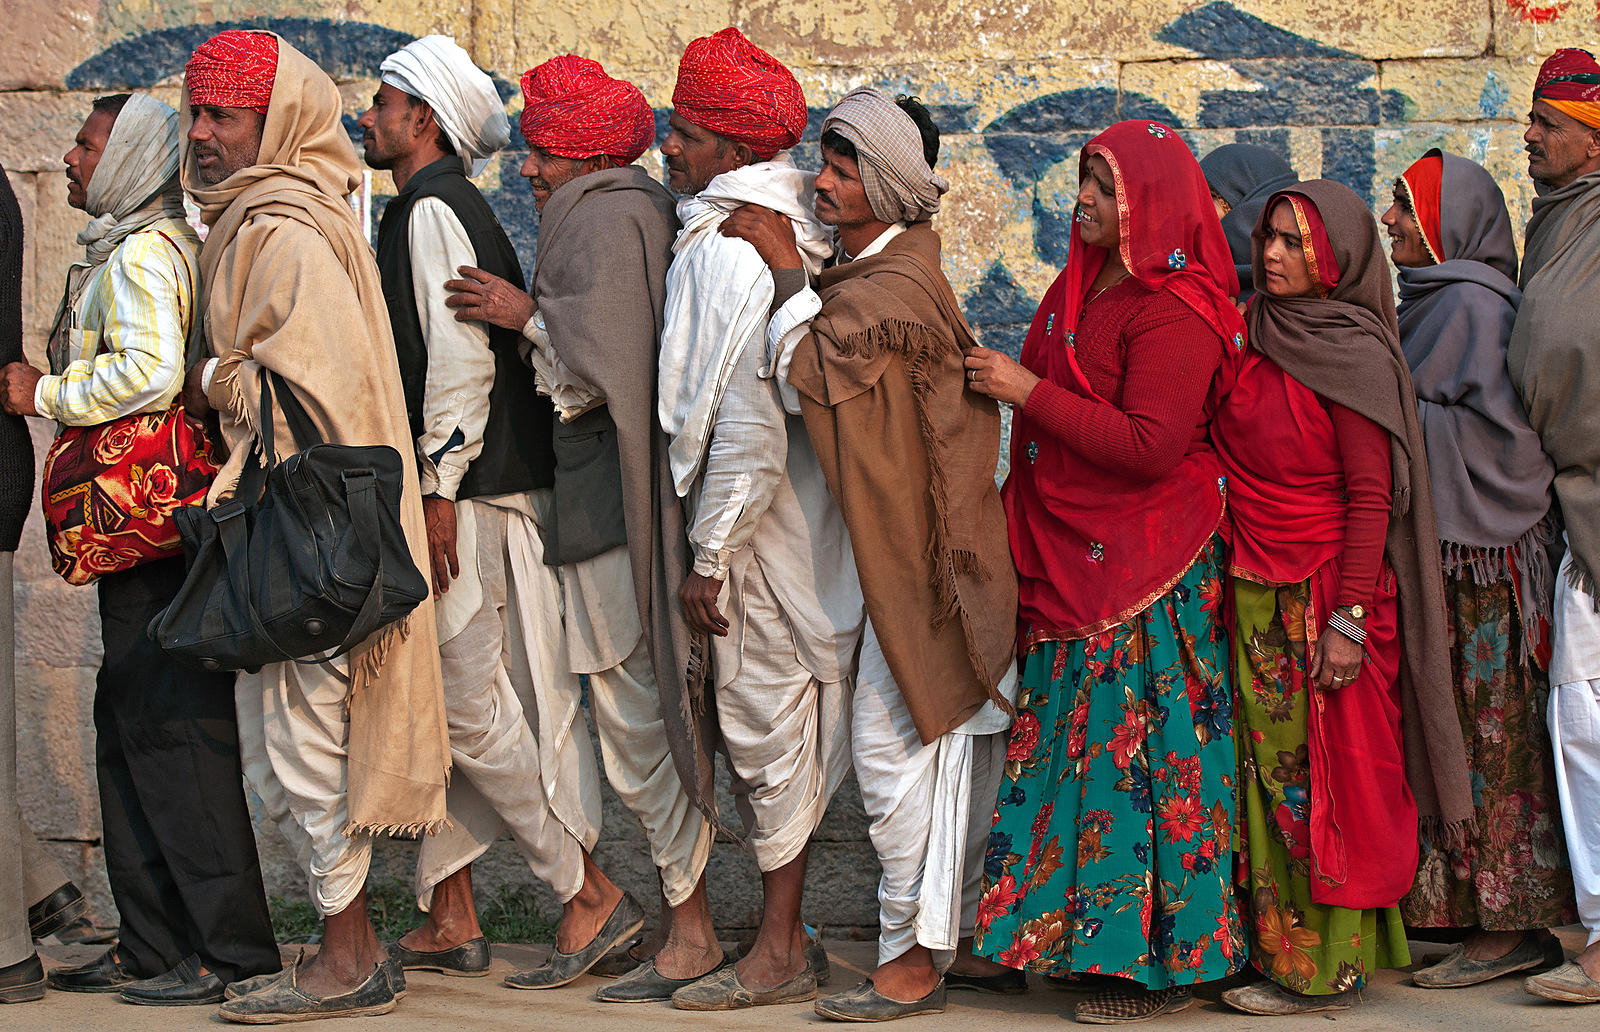 A group of Rajasthani women and men dressed in their traditional attire wait in the queue during the Kumbh Mela.